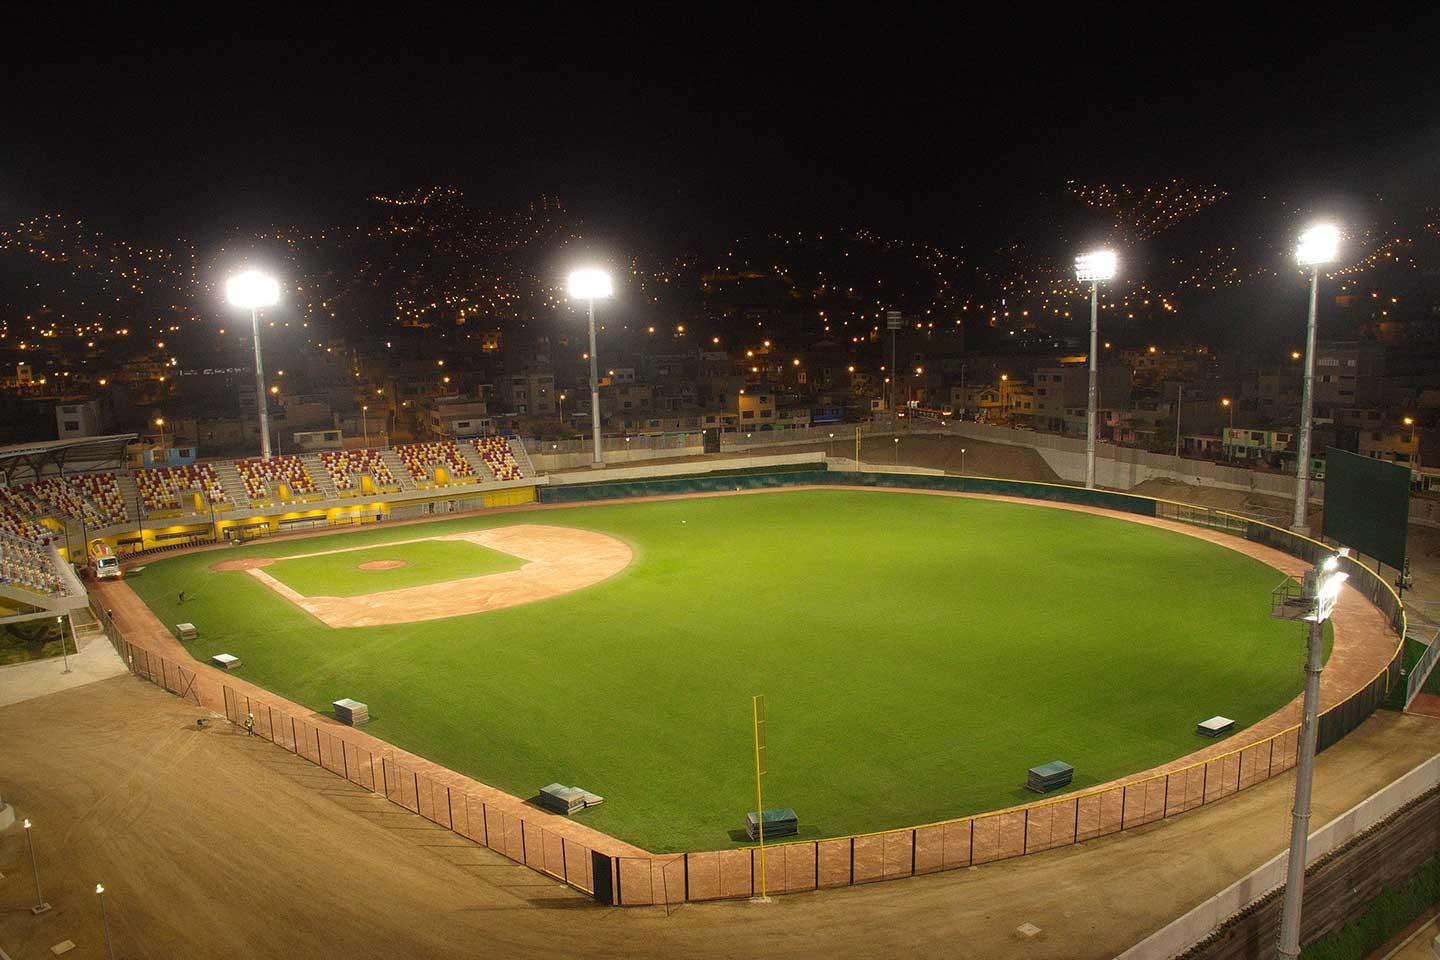 Sustainable lighting for baseball field at Villa María del Triunfo Sports Complex